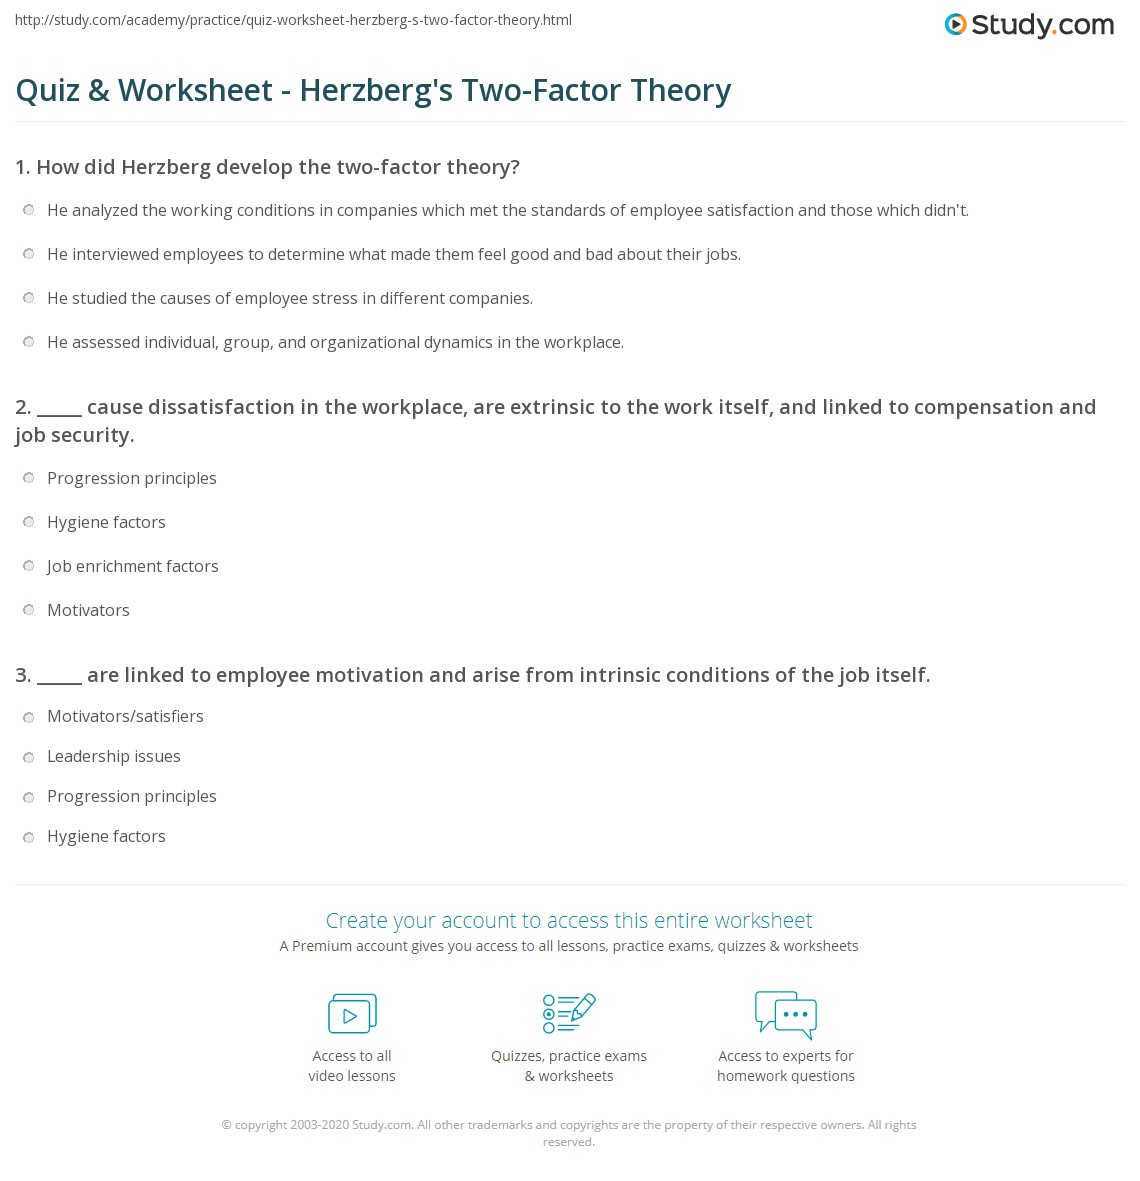 essay on herzbergs two factor theory Herzberg two-factor theory the theory began with the question: what do people want to get out of their jobs herzberg performed studies from 1920.